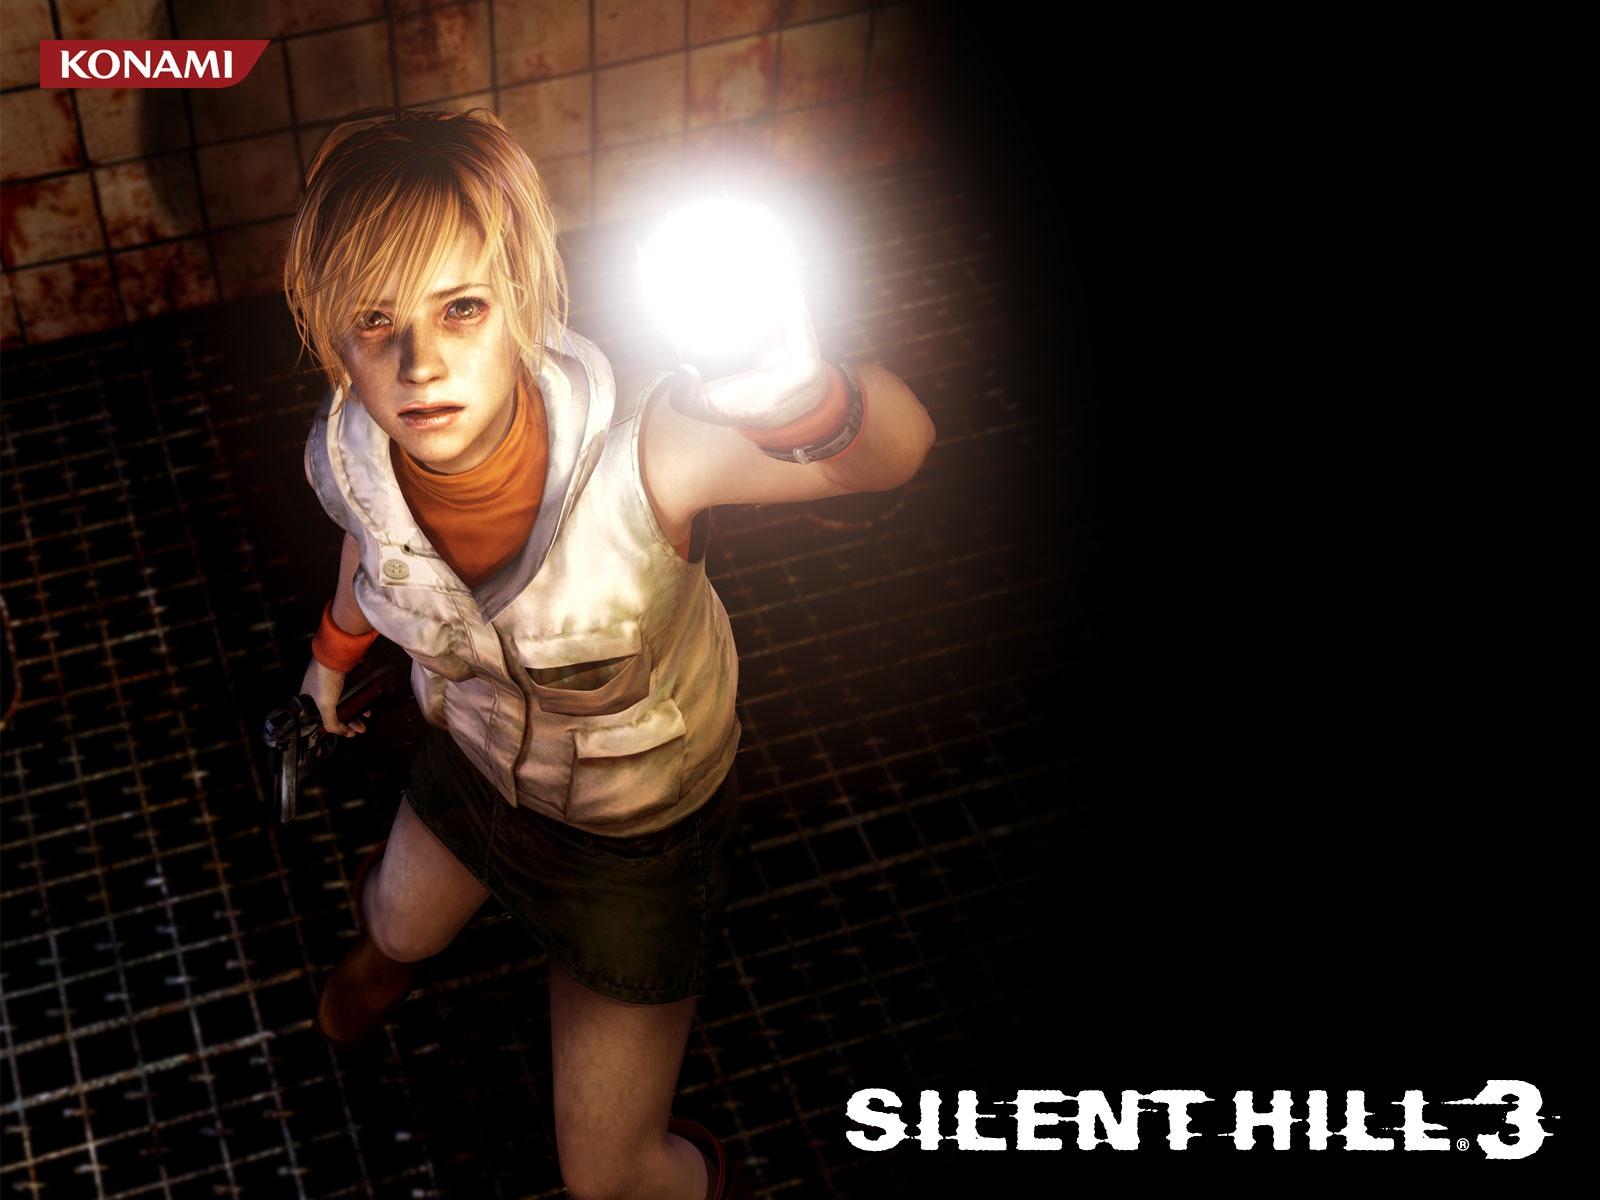 49 Silent Hill 3 Wallpapers On Wallpapersafari